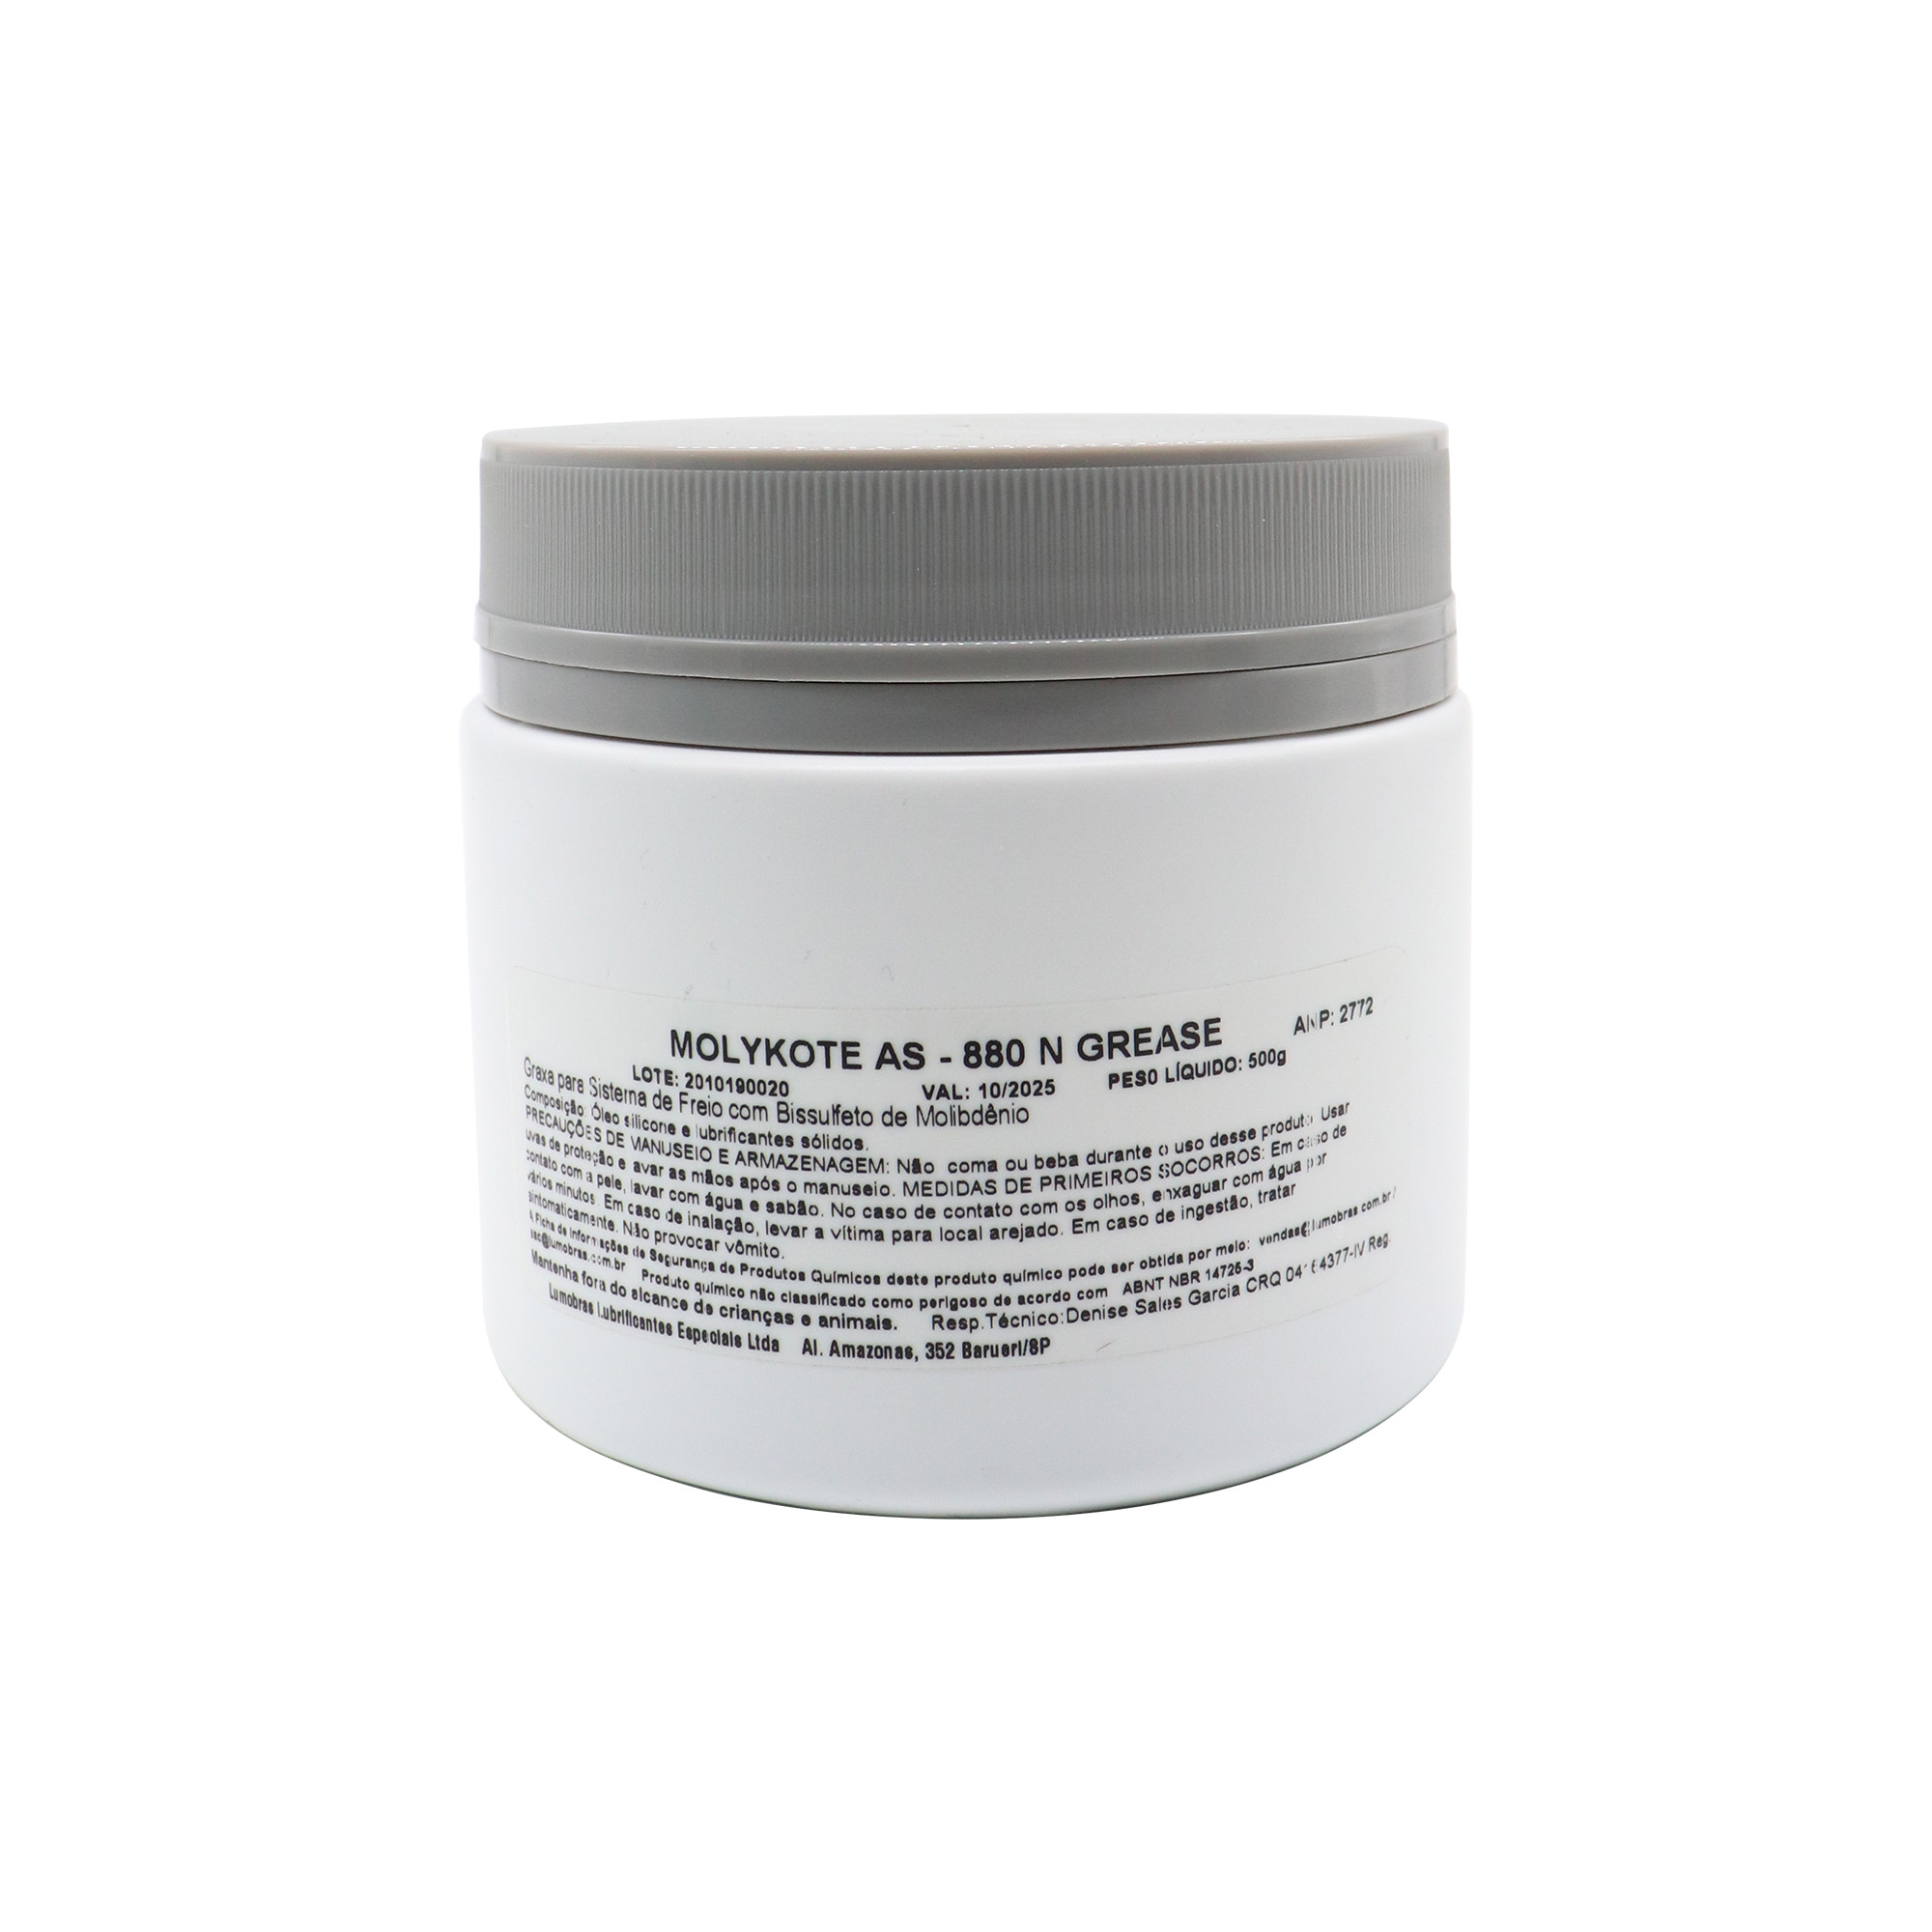 Molykote AS-880 N Grease 500g